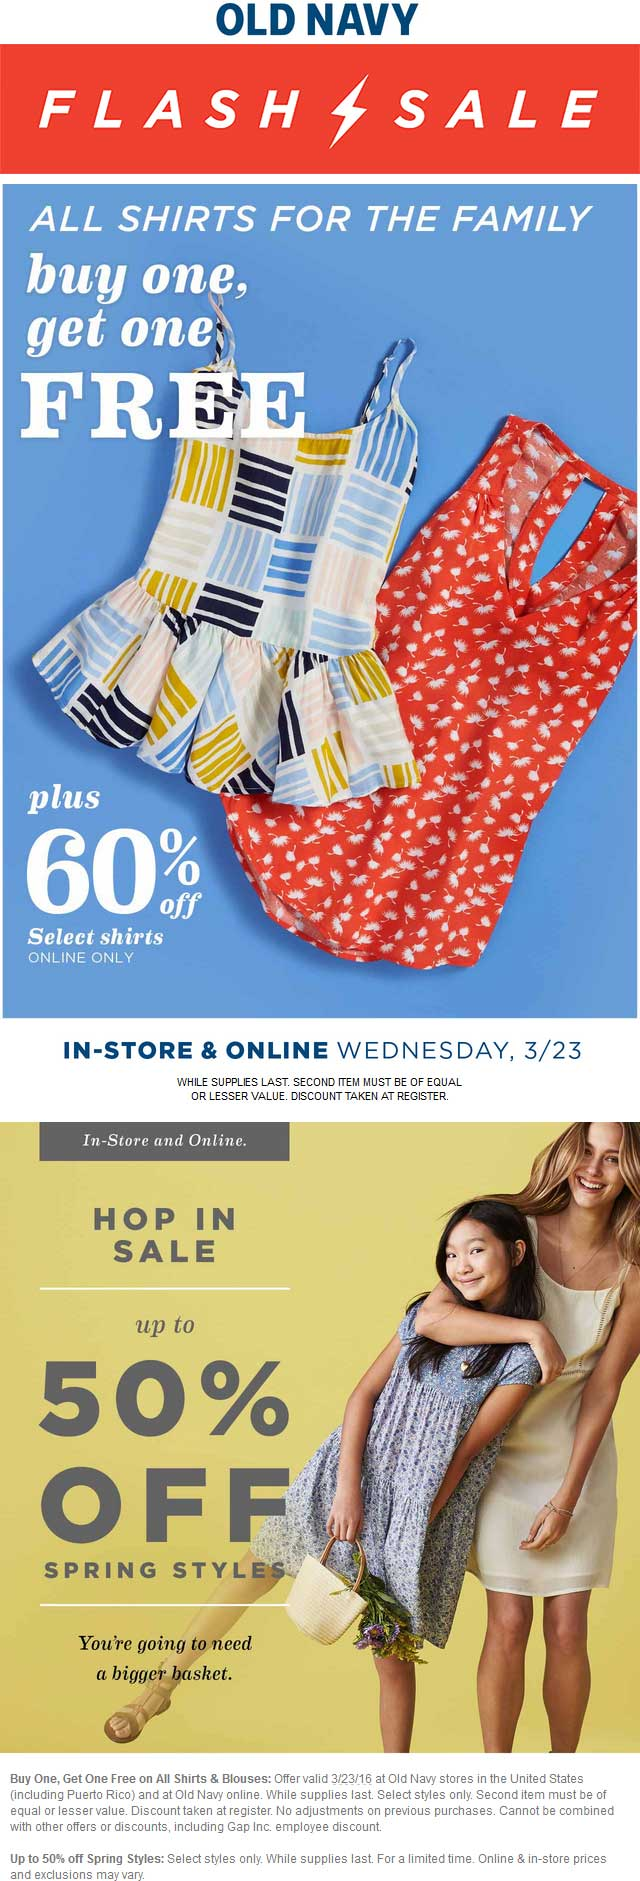 Old Navy Coupon July 2018 two-for-one shirts & more today at Old Navy, ditto online